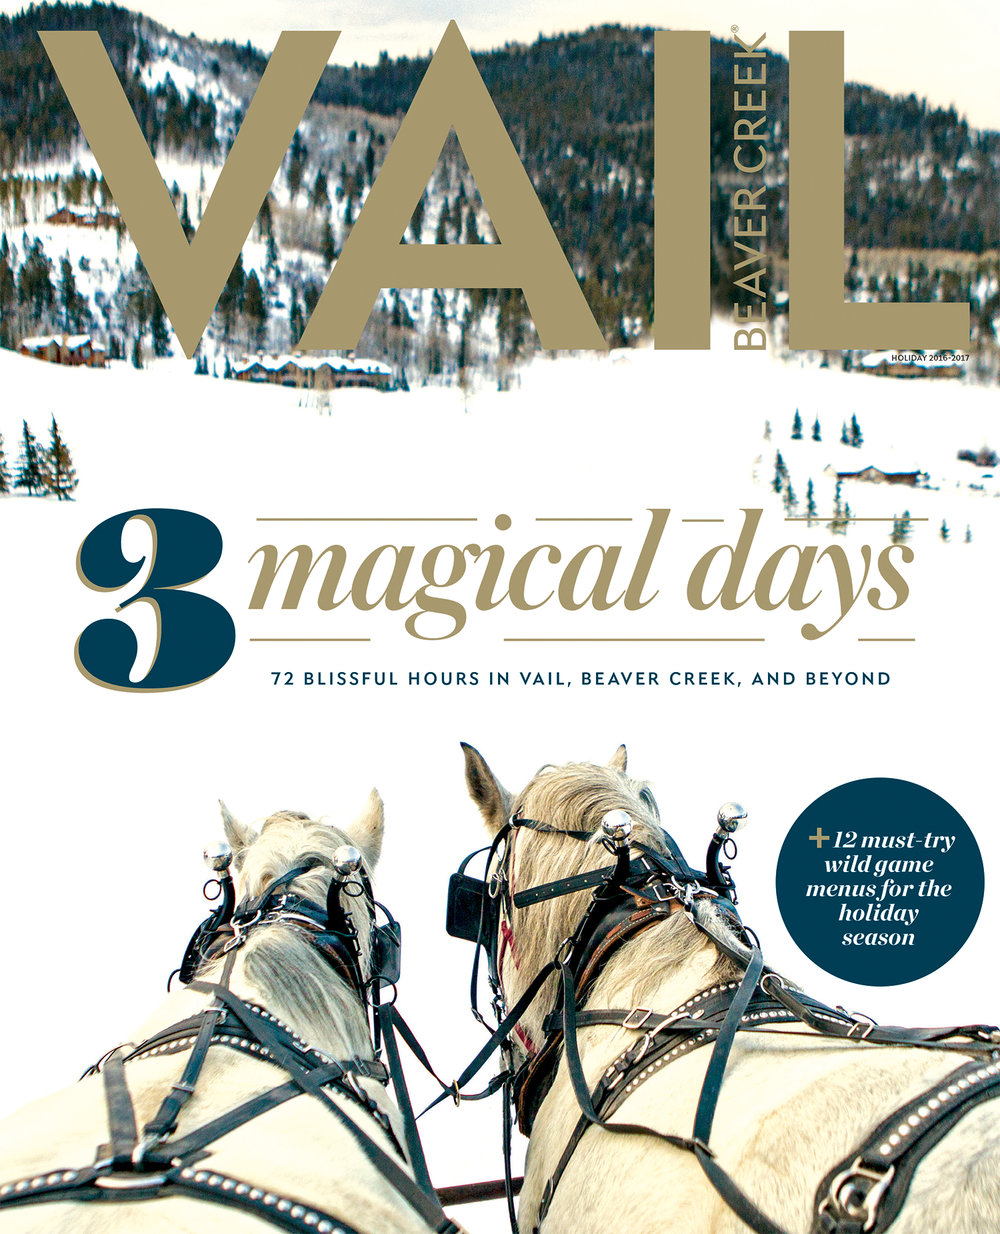 Vail_cover_2.jpg